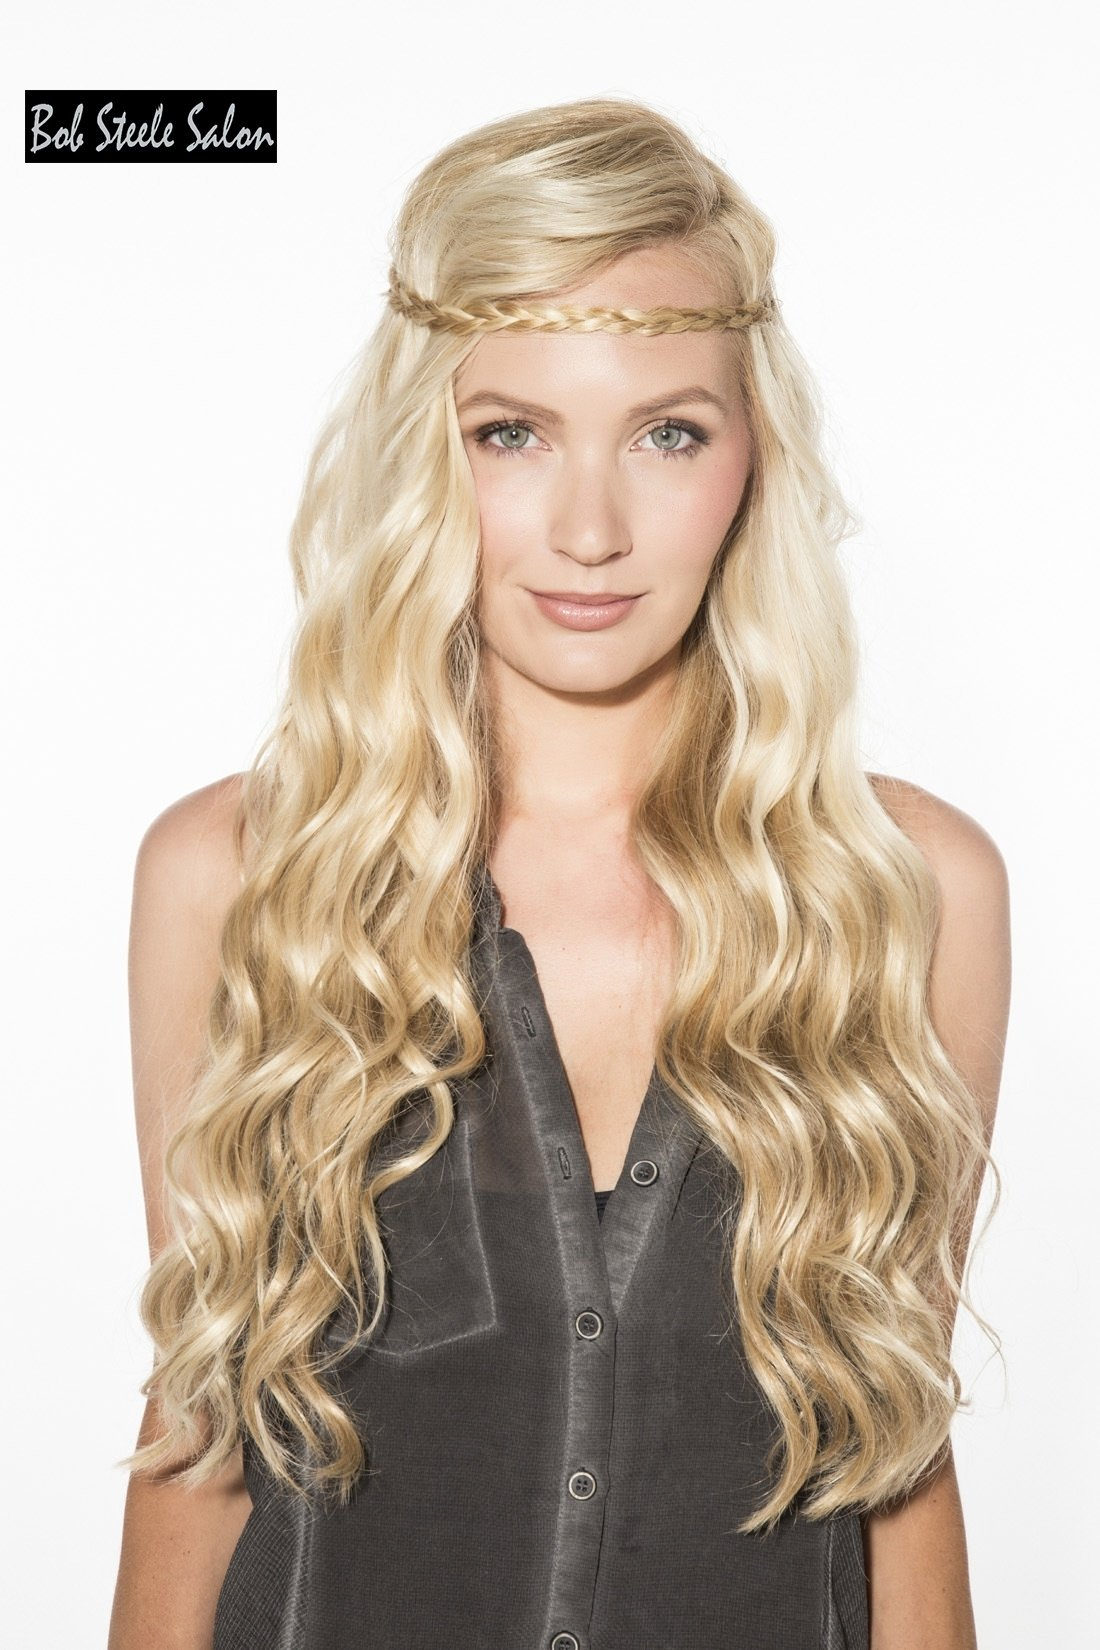 10 Elegant Cool Hair Ideas For Long Hair stunning cute and easy hairstyles for long hair 21 for your ideas 2021